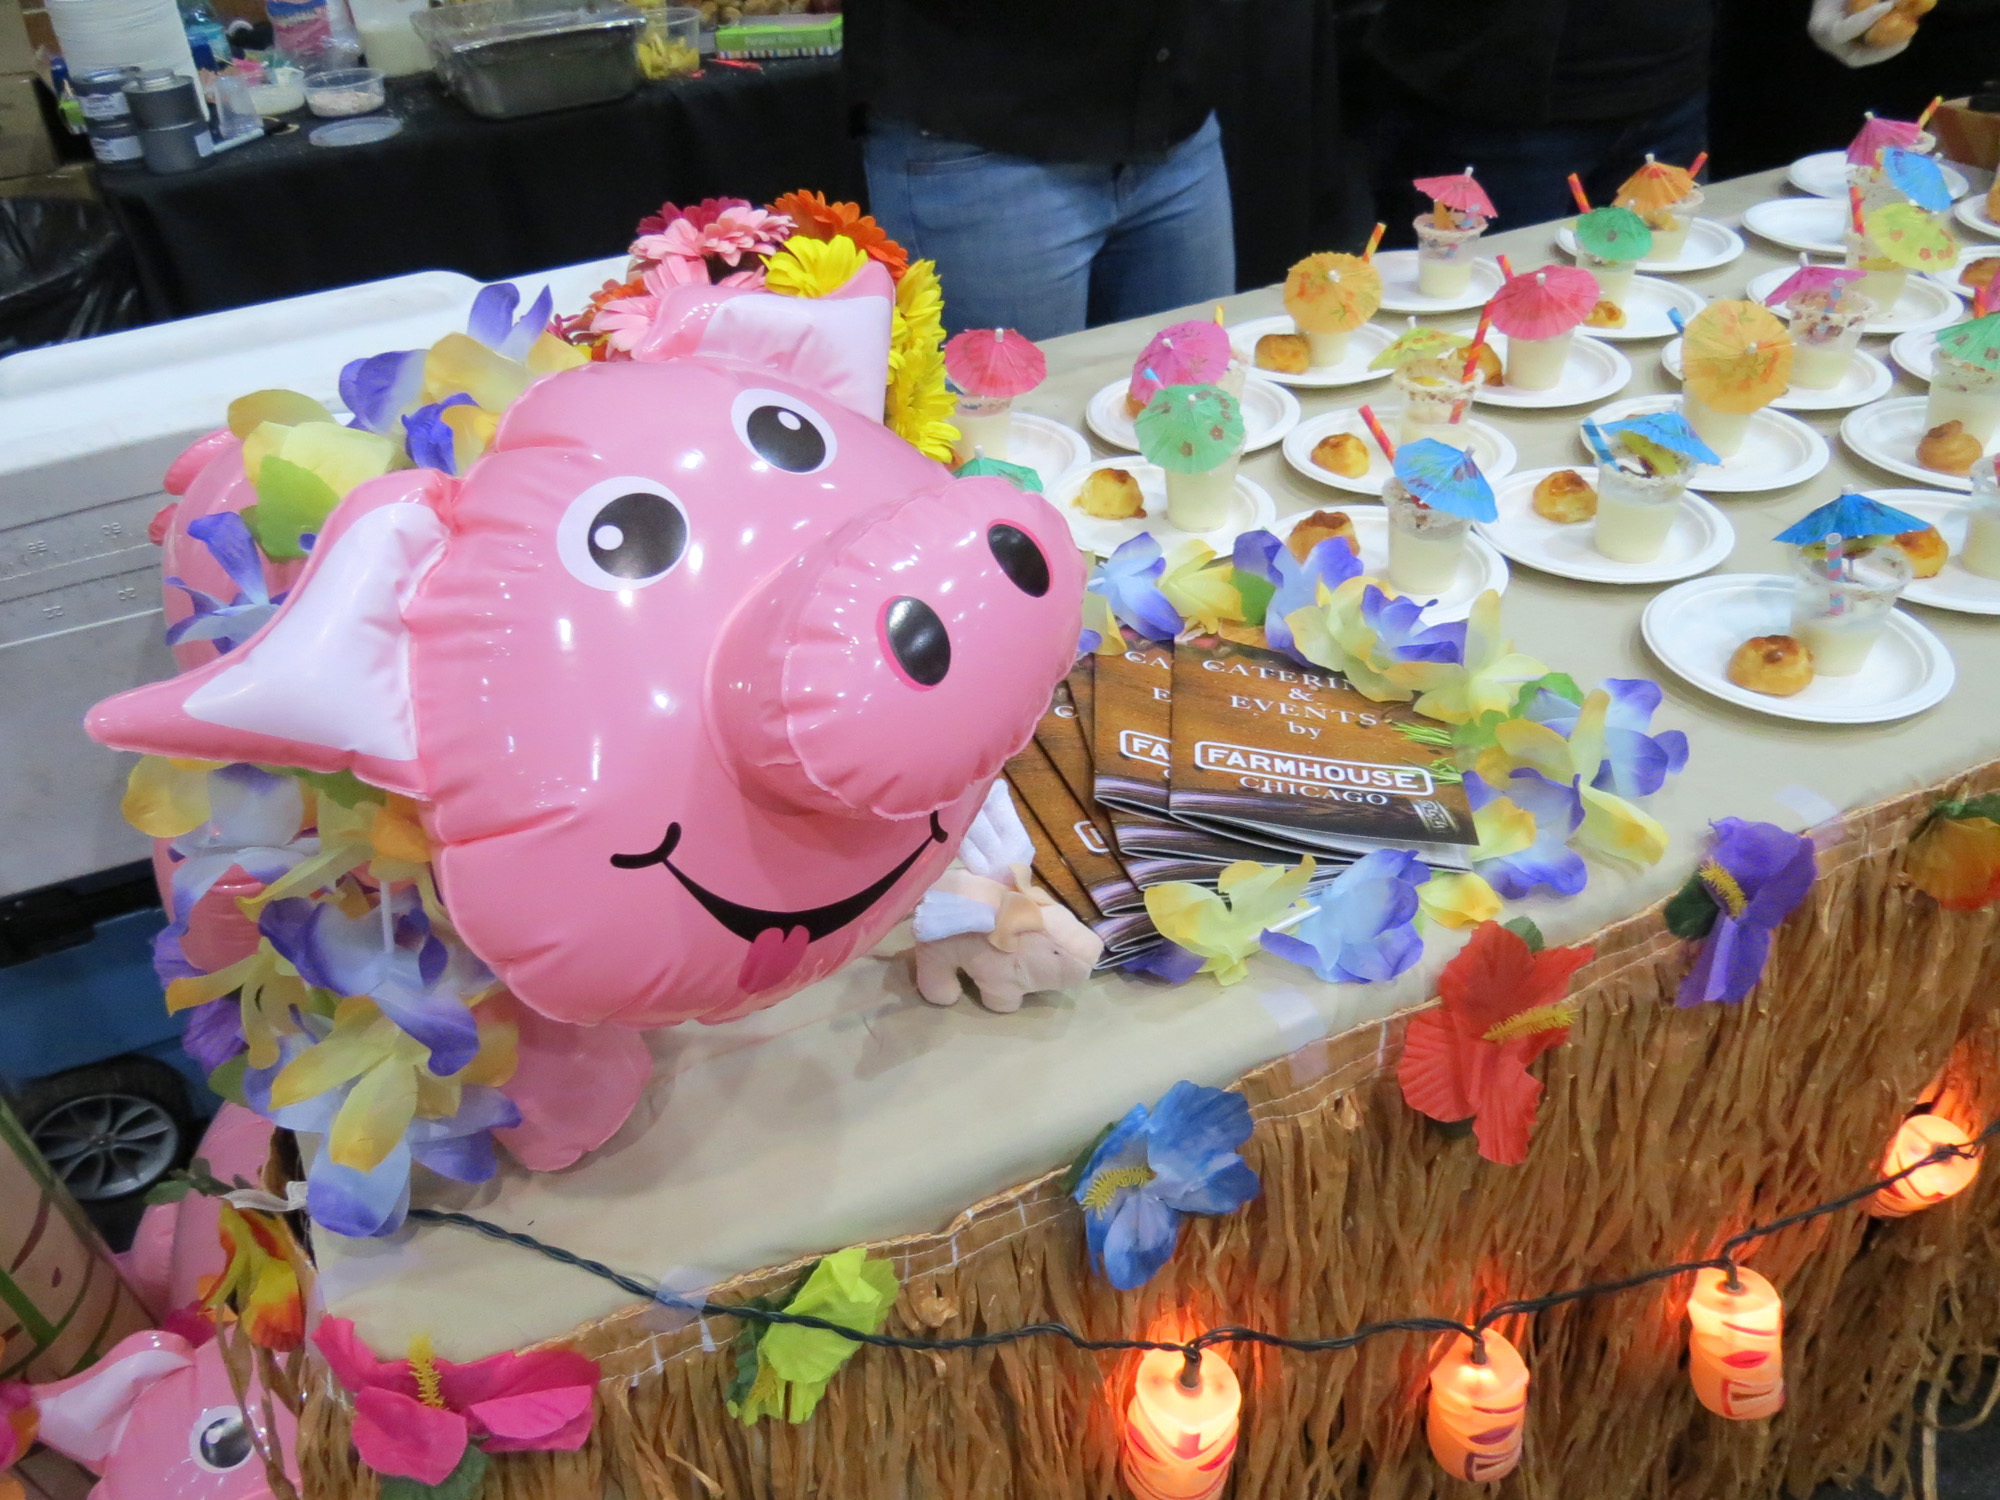 JUDGE, JURY AND PORKSECUTIONER AT BACONFEST